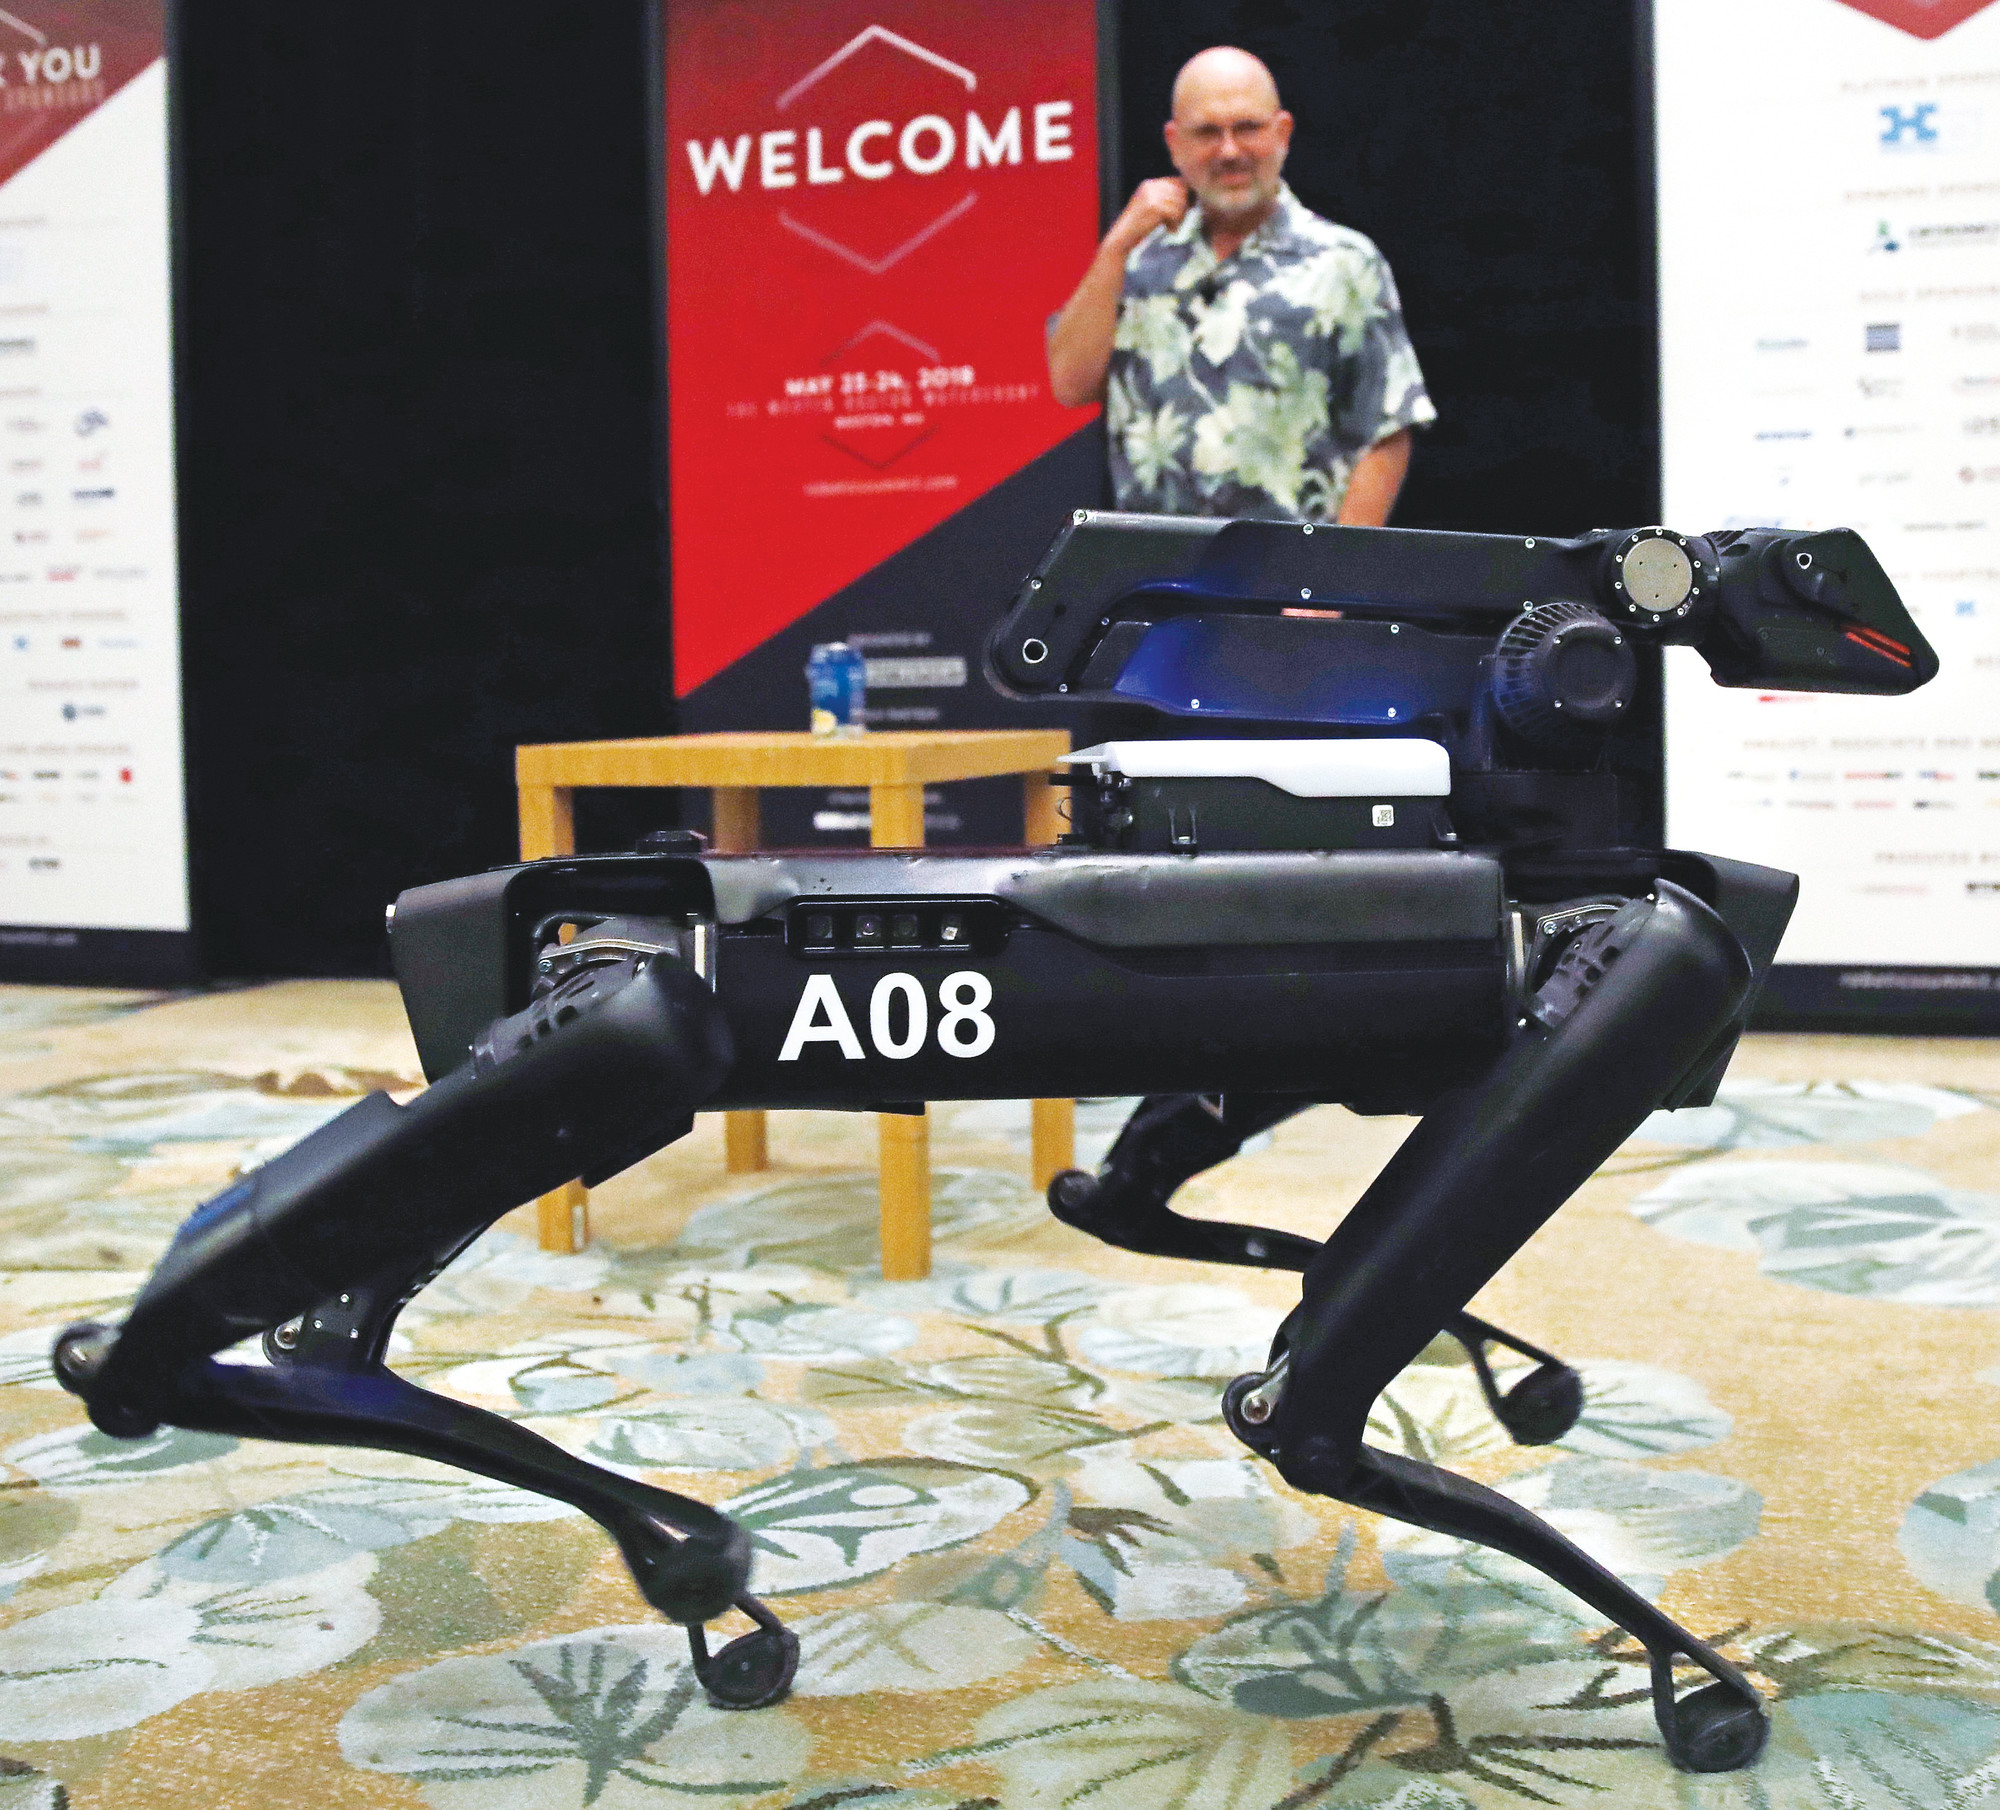 THE ASSOCIATED PRESS  In this May 24, photo a Boston Dynamics SpotMini robot walks through a conference room during a robotics summit in Boston.